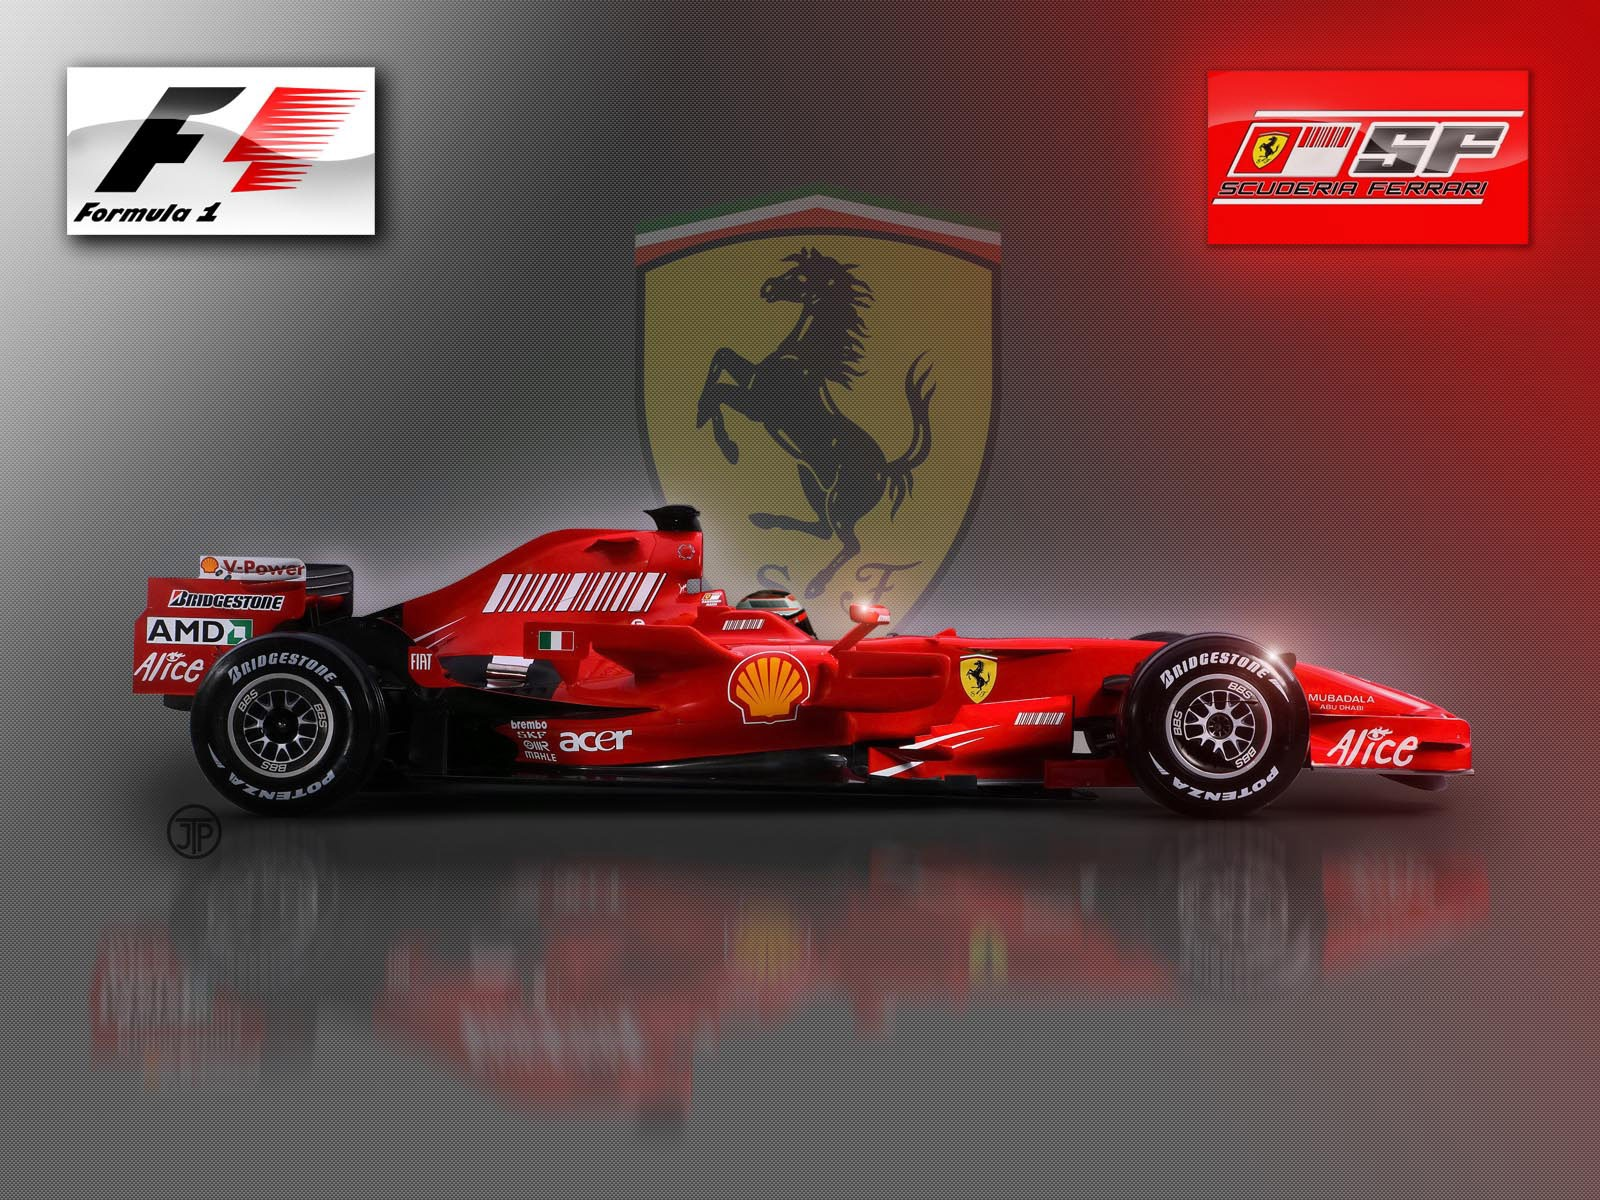 ferrari f1 wallpapers archives - hd desktop wallpapers | 4k hd